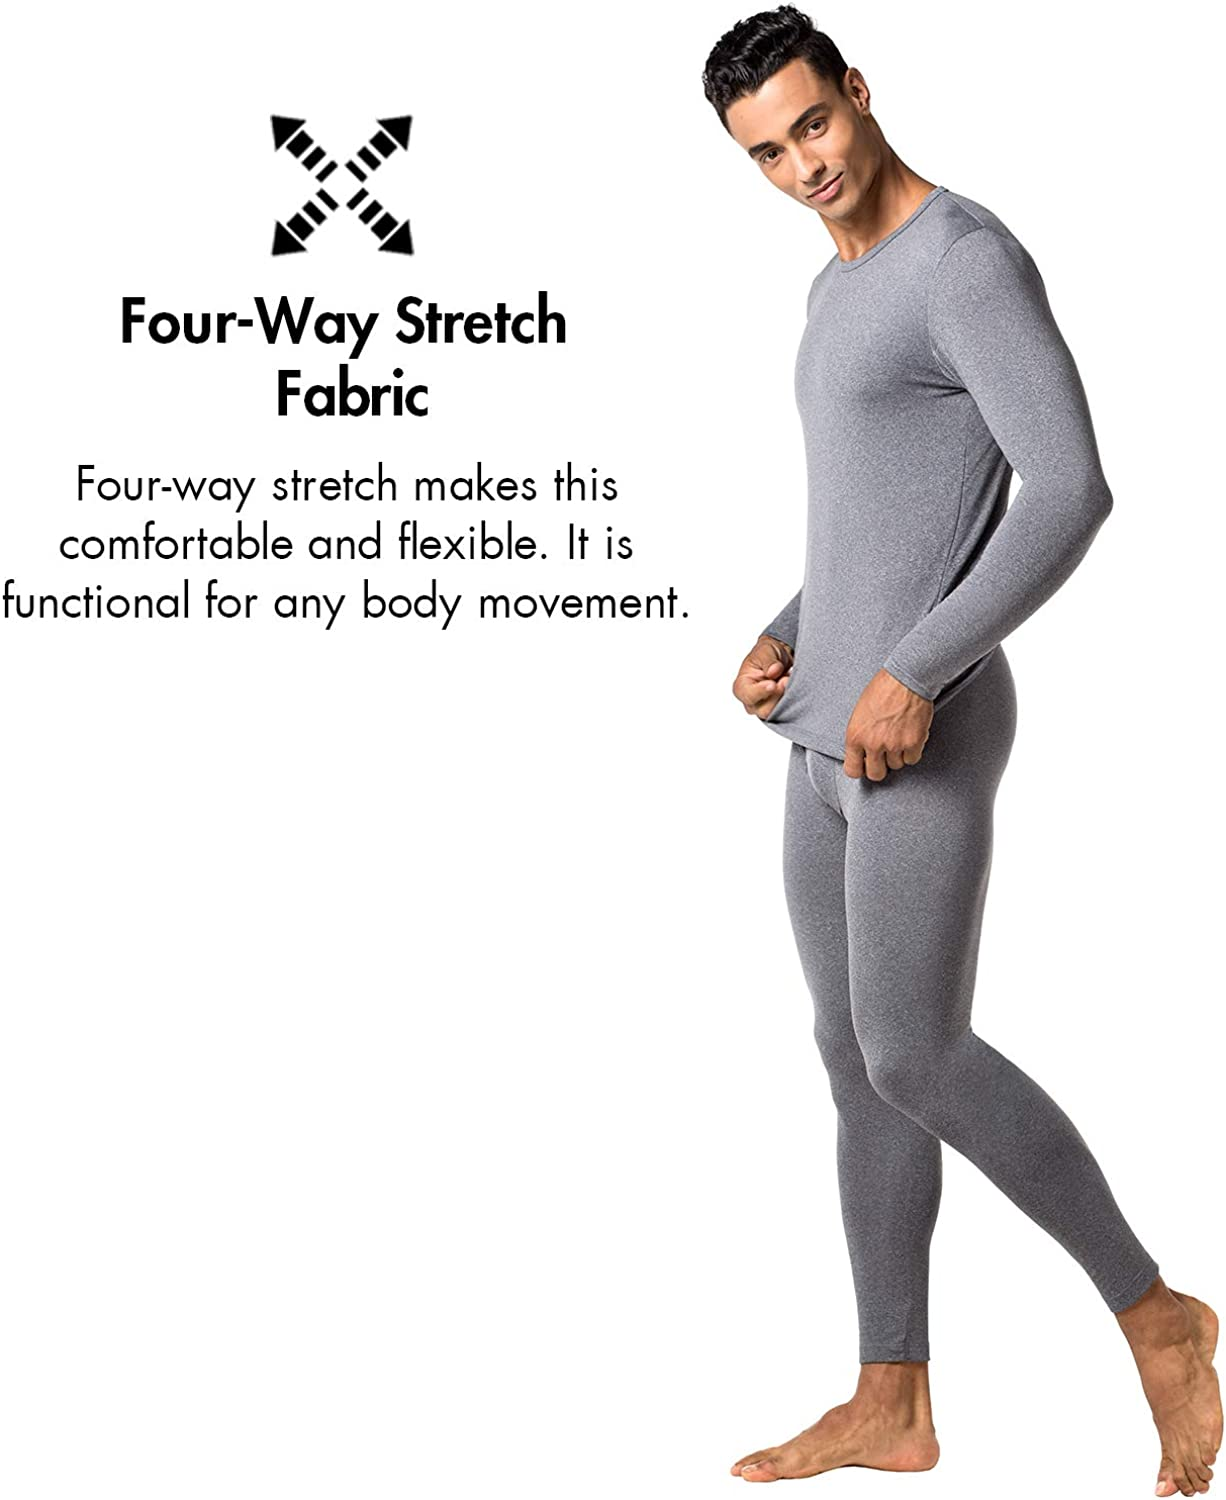 LAPASA Mens Thermal Tops Thermal Underwear Men Fleece Lined Light Weight /& Midweight /& Heavyweight Base Layer 2 Pack or 1 Pack M09/&M55/&M26